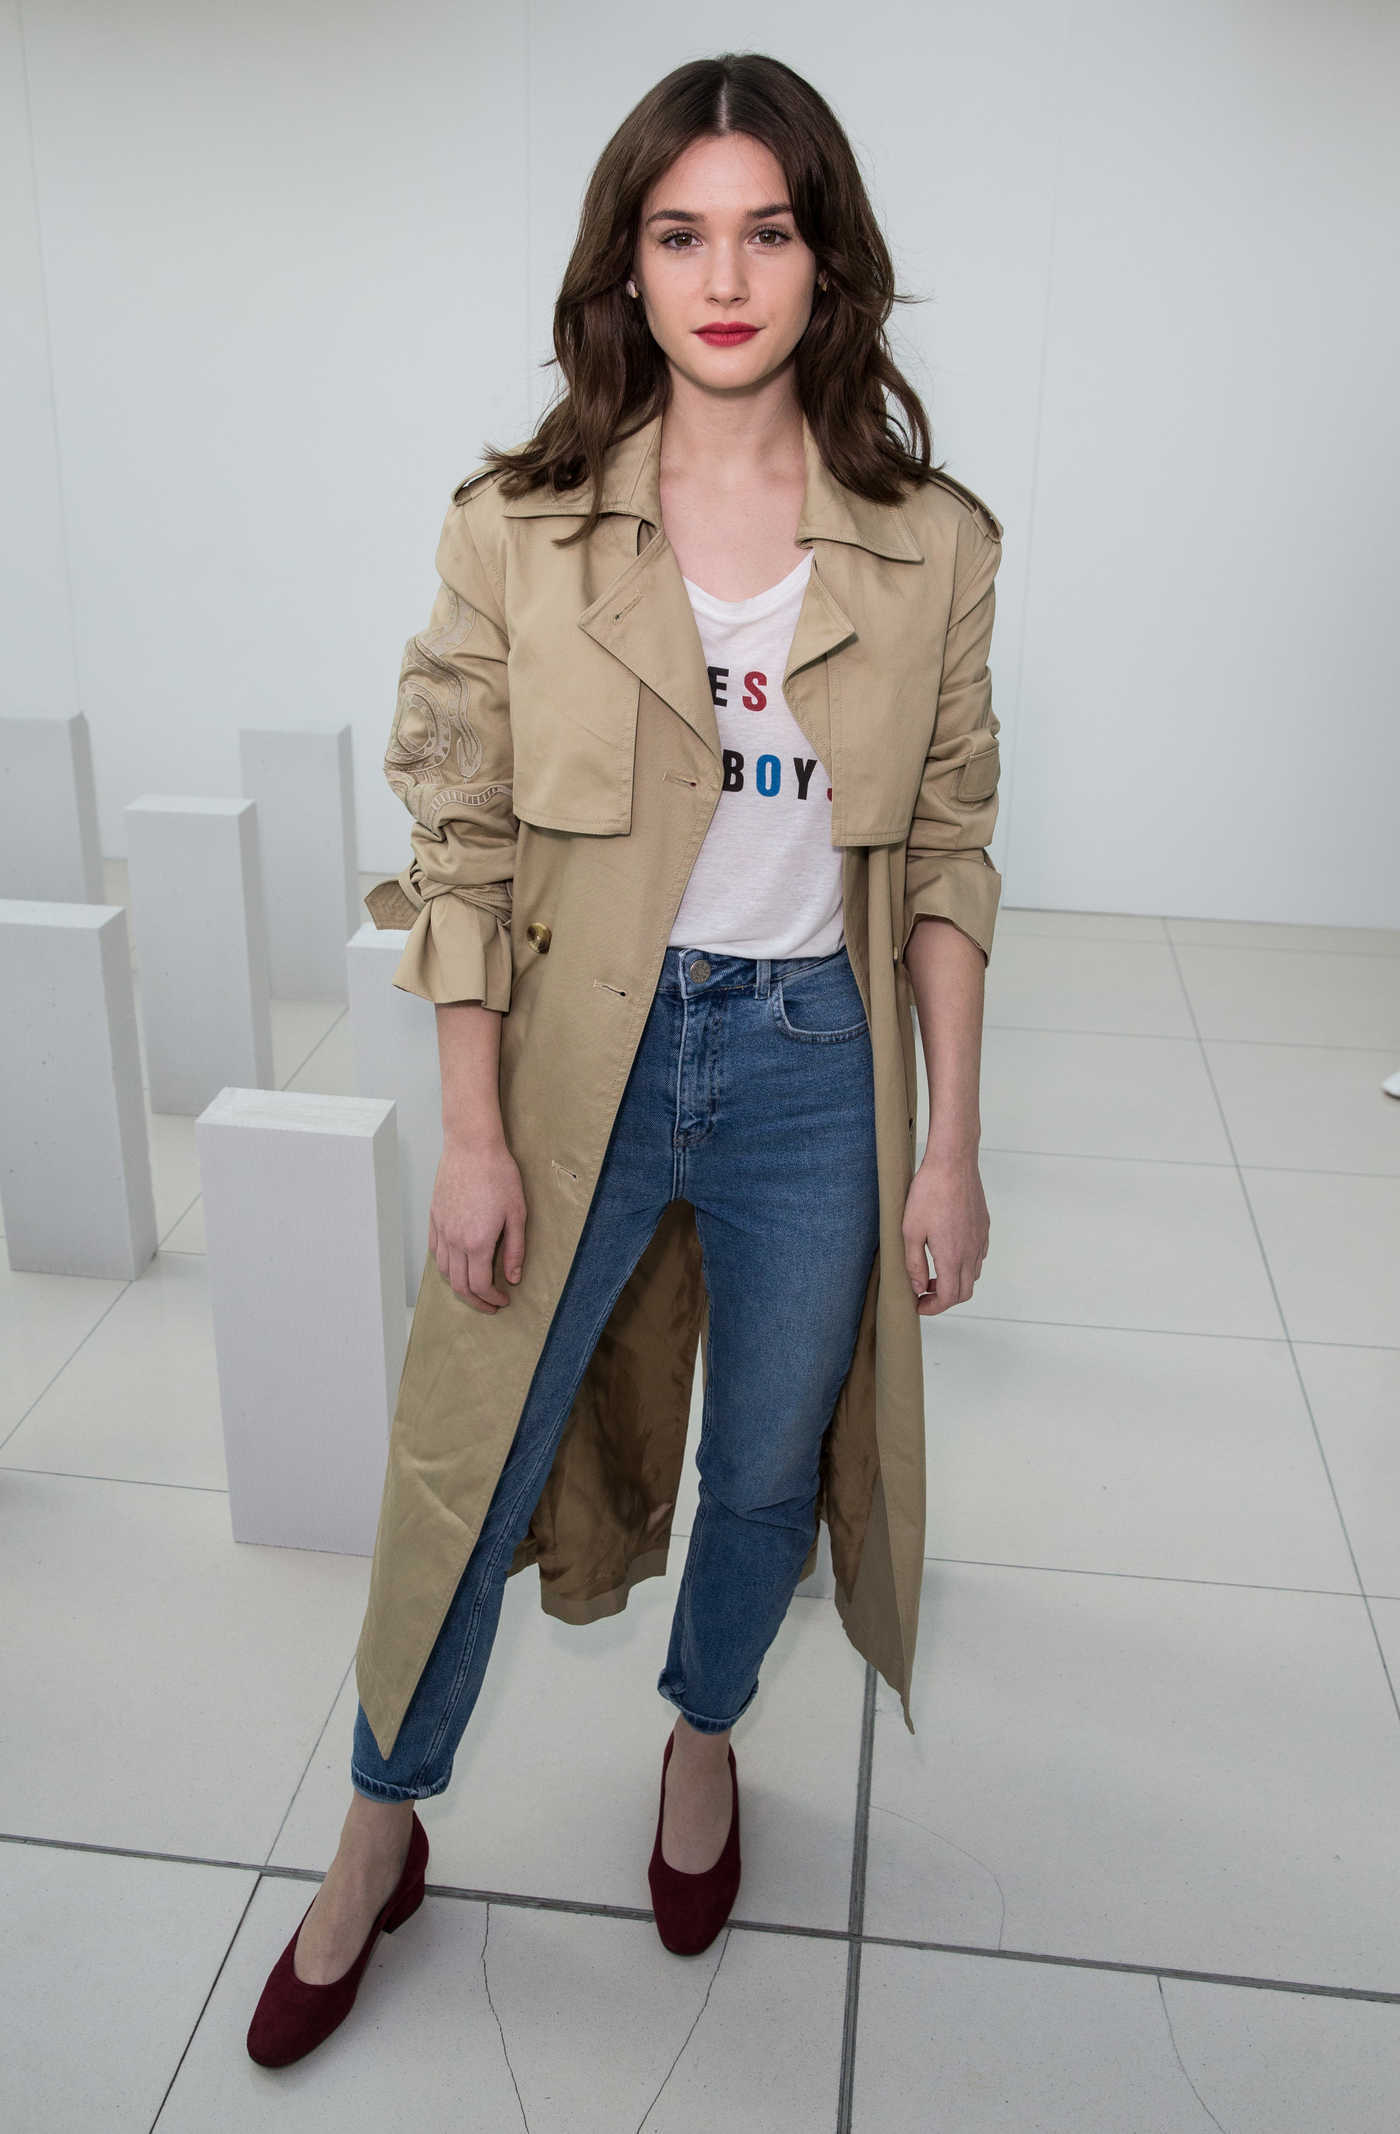 Sai Bennett at the Marcus Lupfer Presentation During the London Fashion Week 02/18/2017